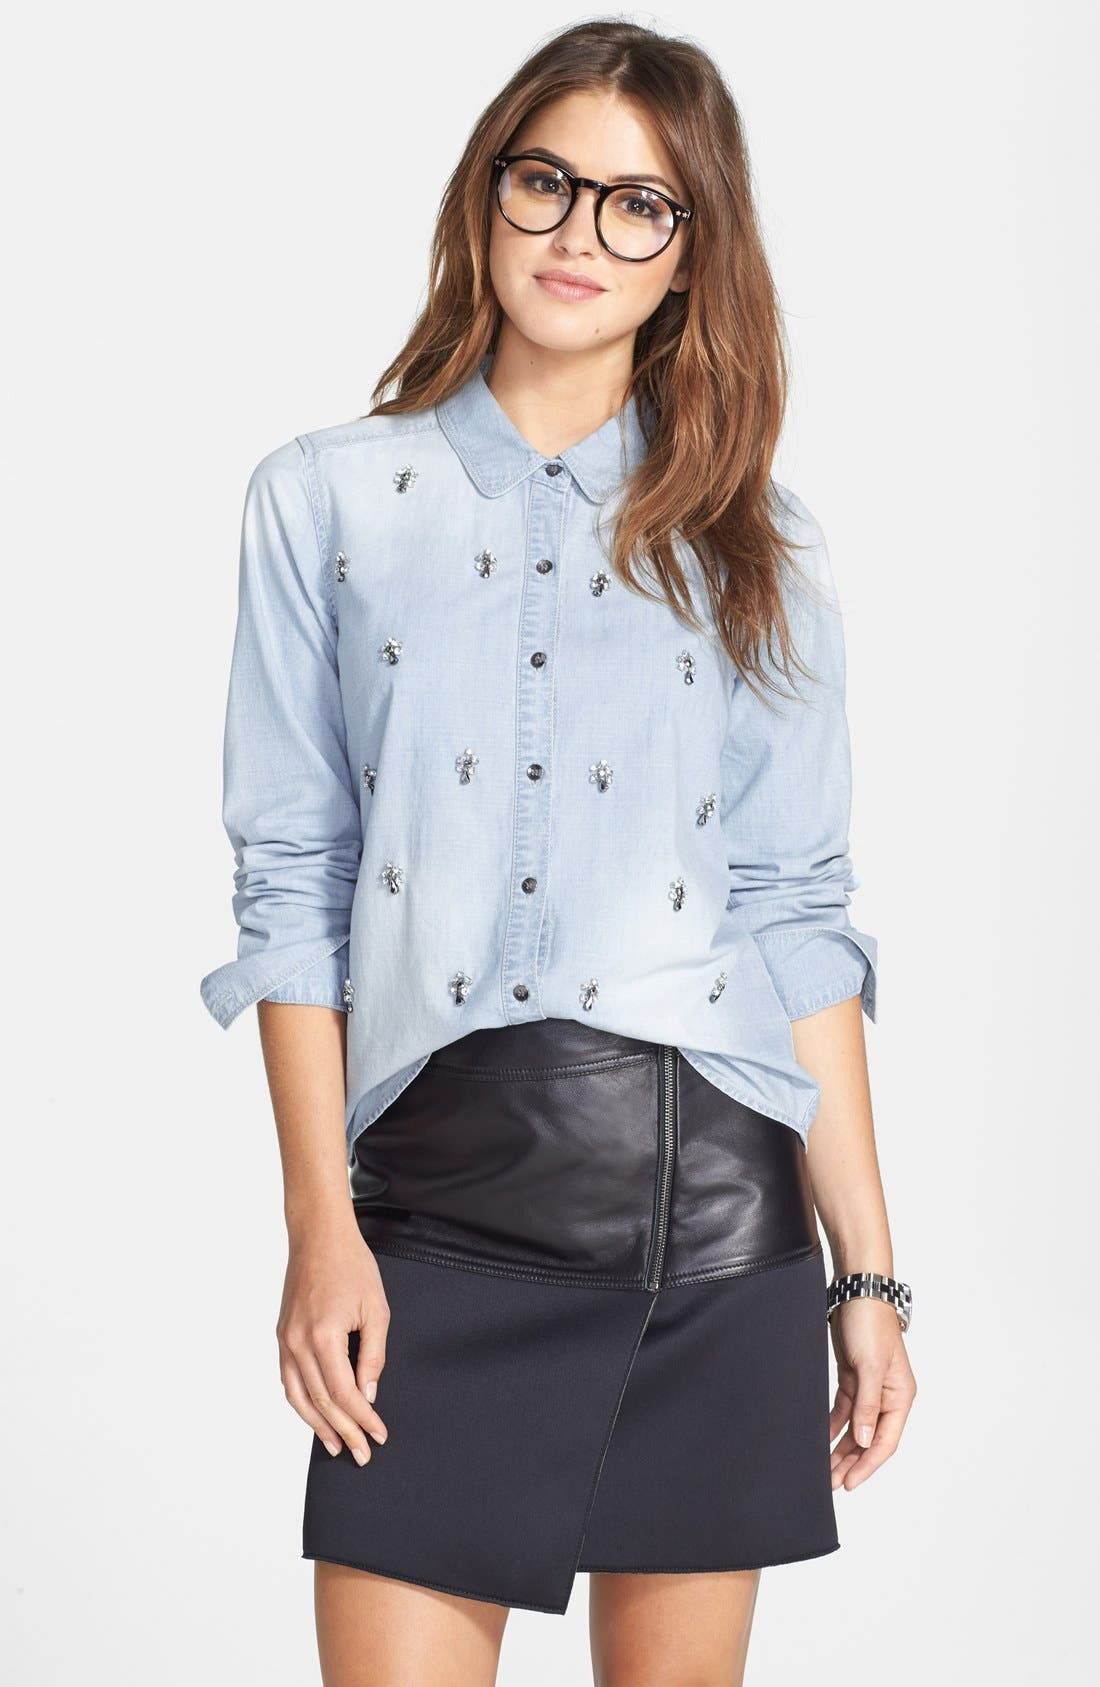 Alternate Image 1 Selected - Halogen® Embellished Denim Shirt (Regular & Petite)